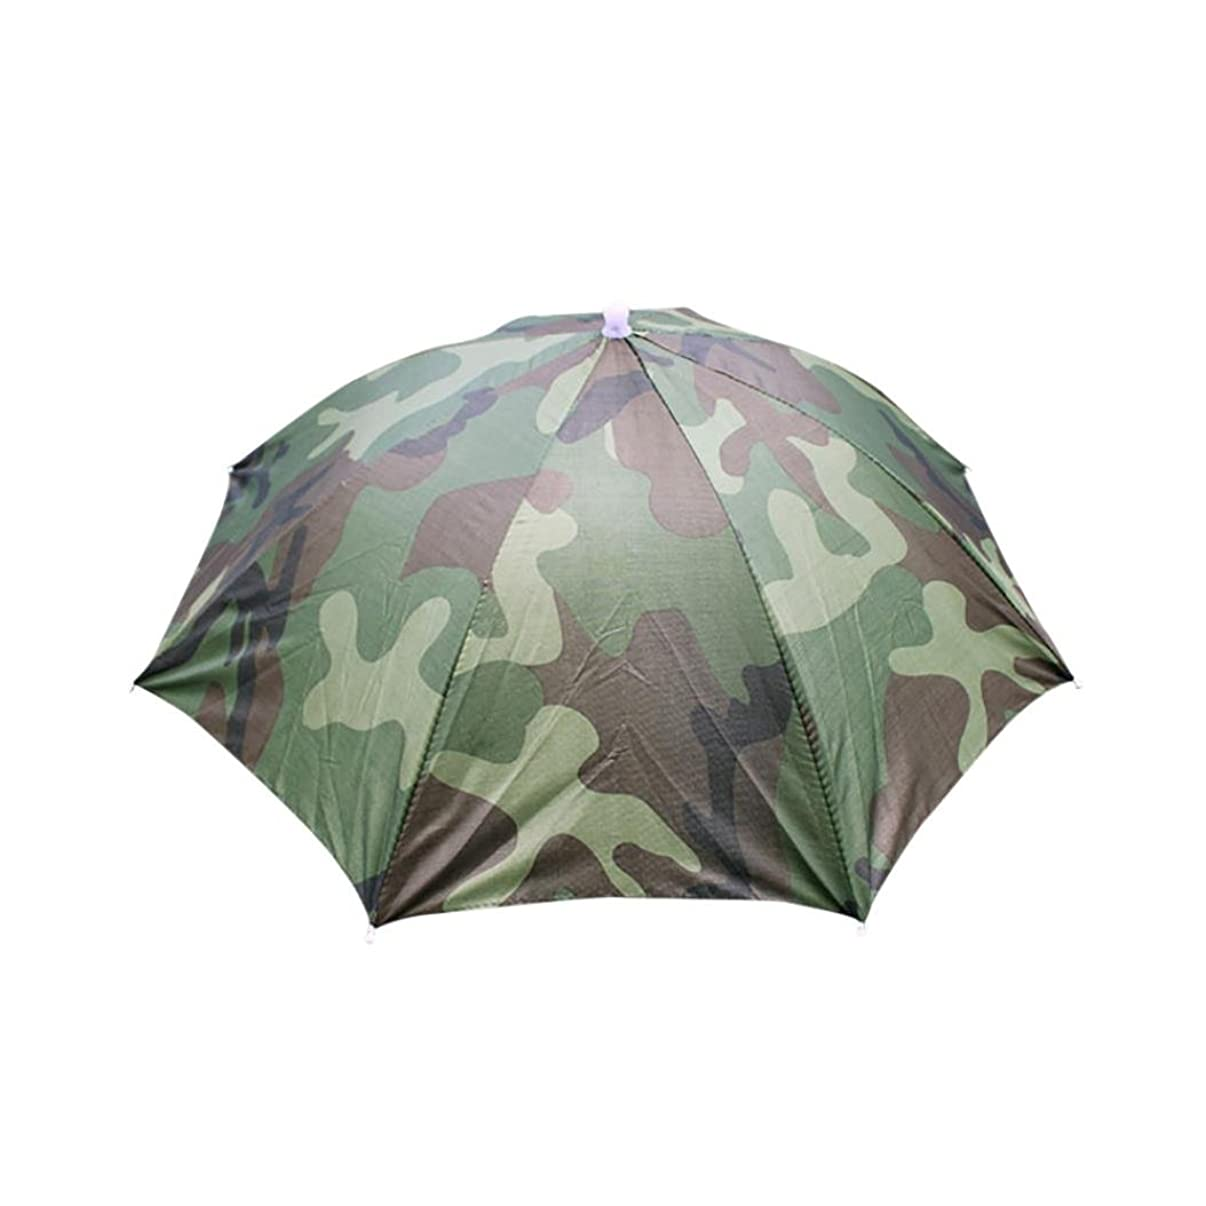 Kimloog Clearance!Sun & Rain Rainbow Umbrella Hat with Head Strap for Adults and Kids